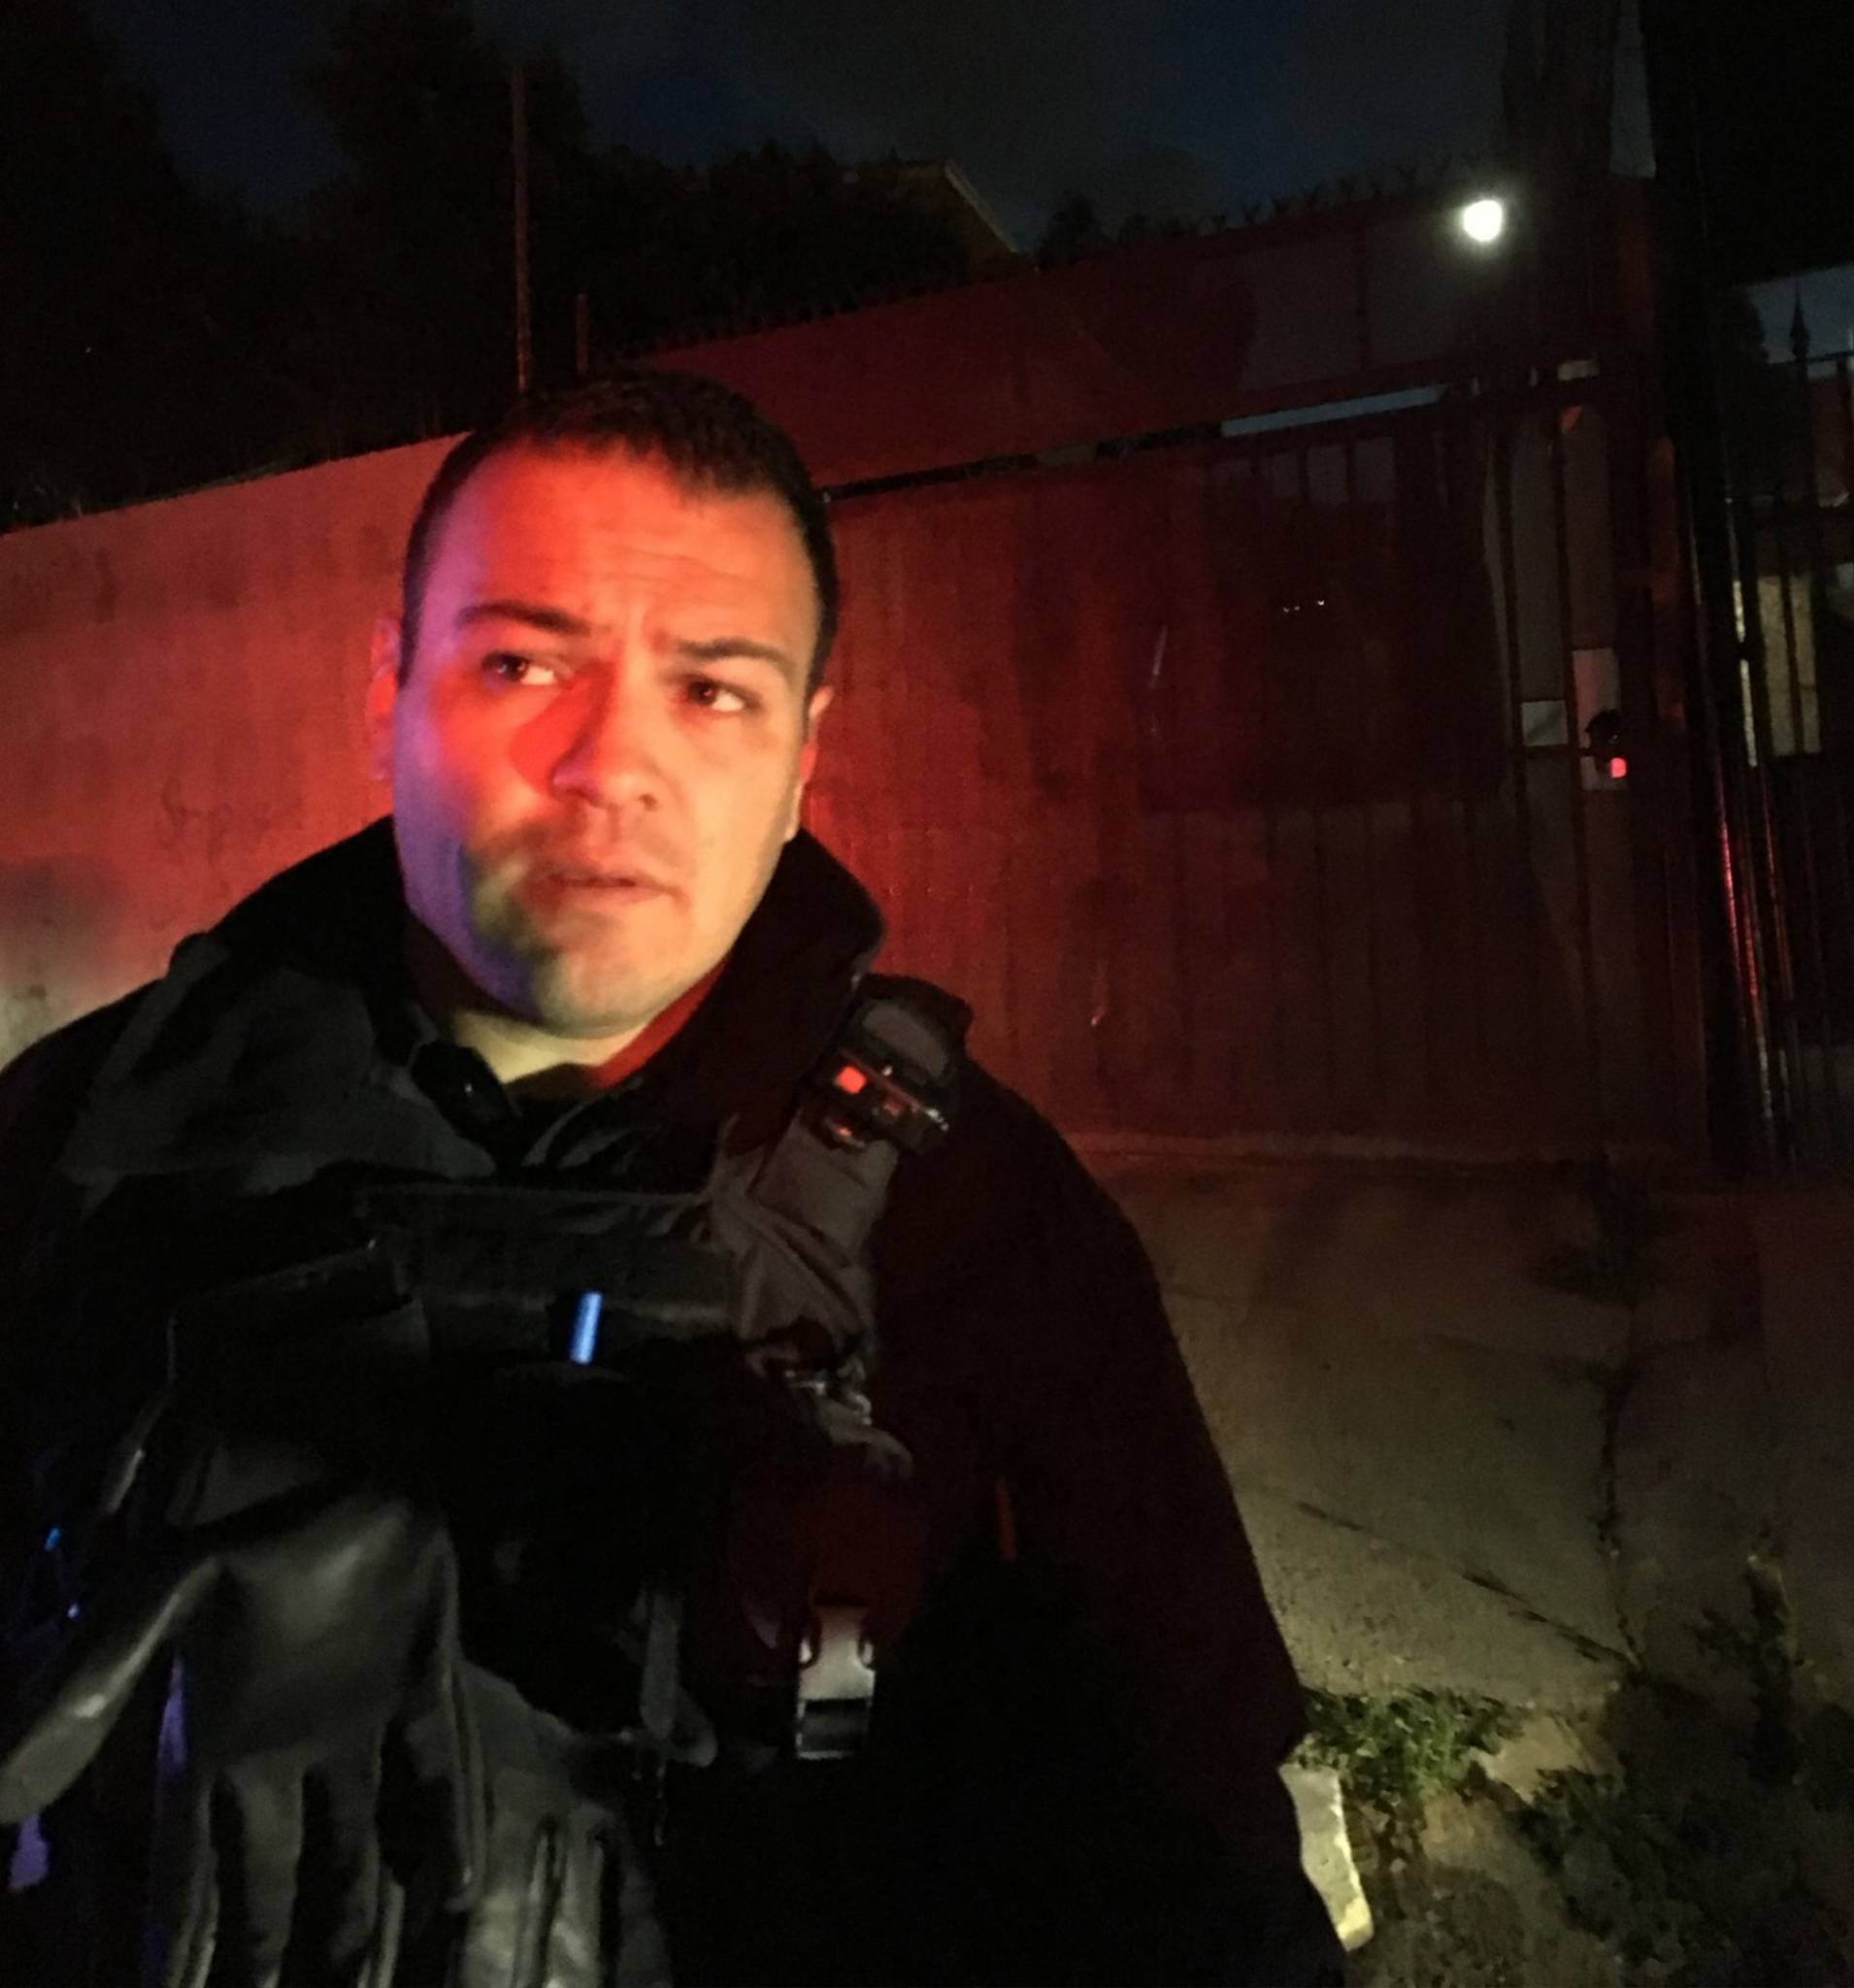 In Tijuana, Police Grapple With World's Worst Homicide Rate